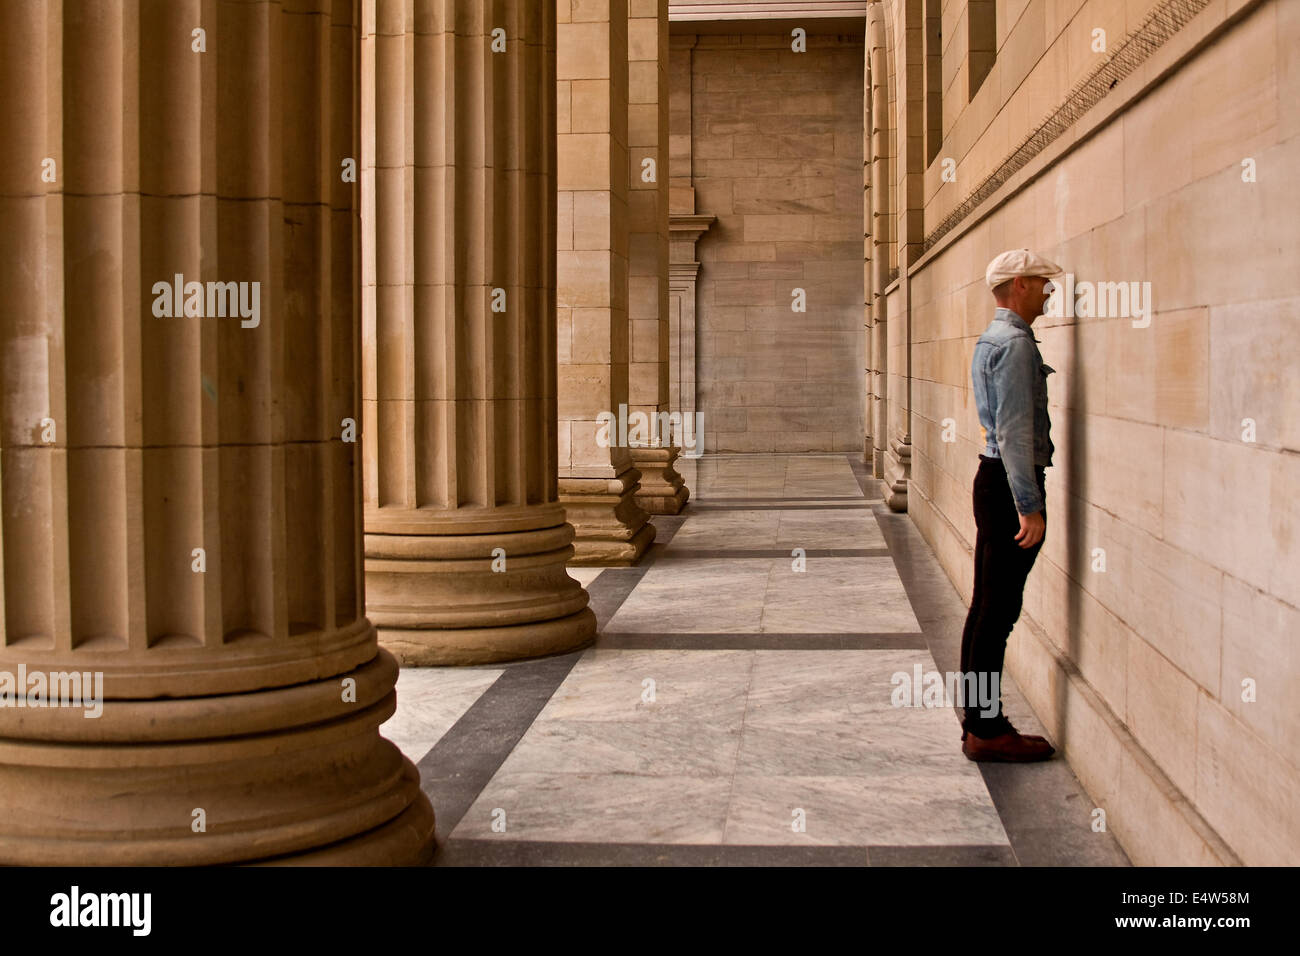 An Arts Entertainer Mr James Everything standing face to the wall at the Caird Hall exhibiting his new project in Stock Photo